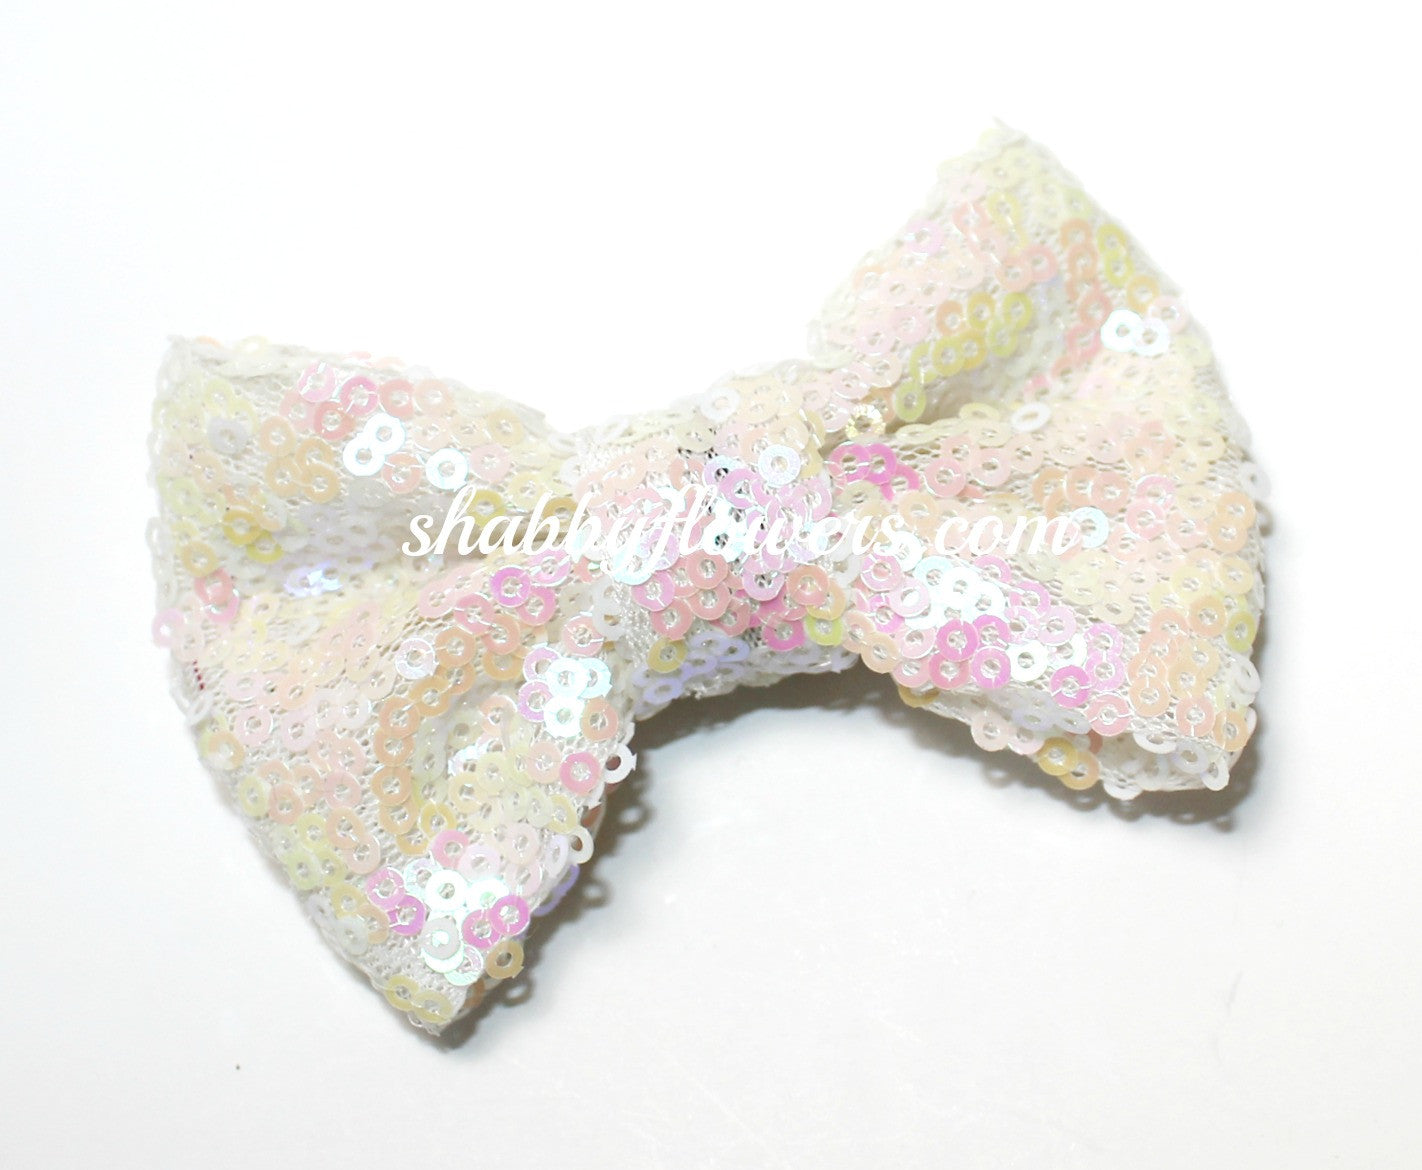 Large Sequin Bow - White - shabbyflowers.com